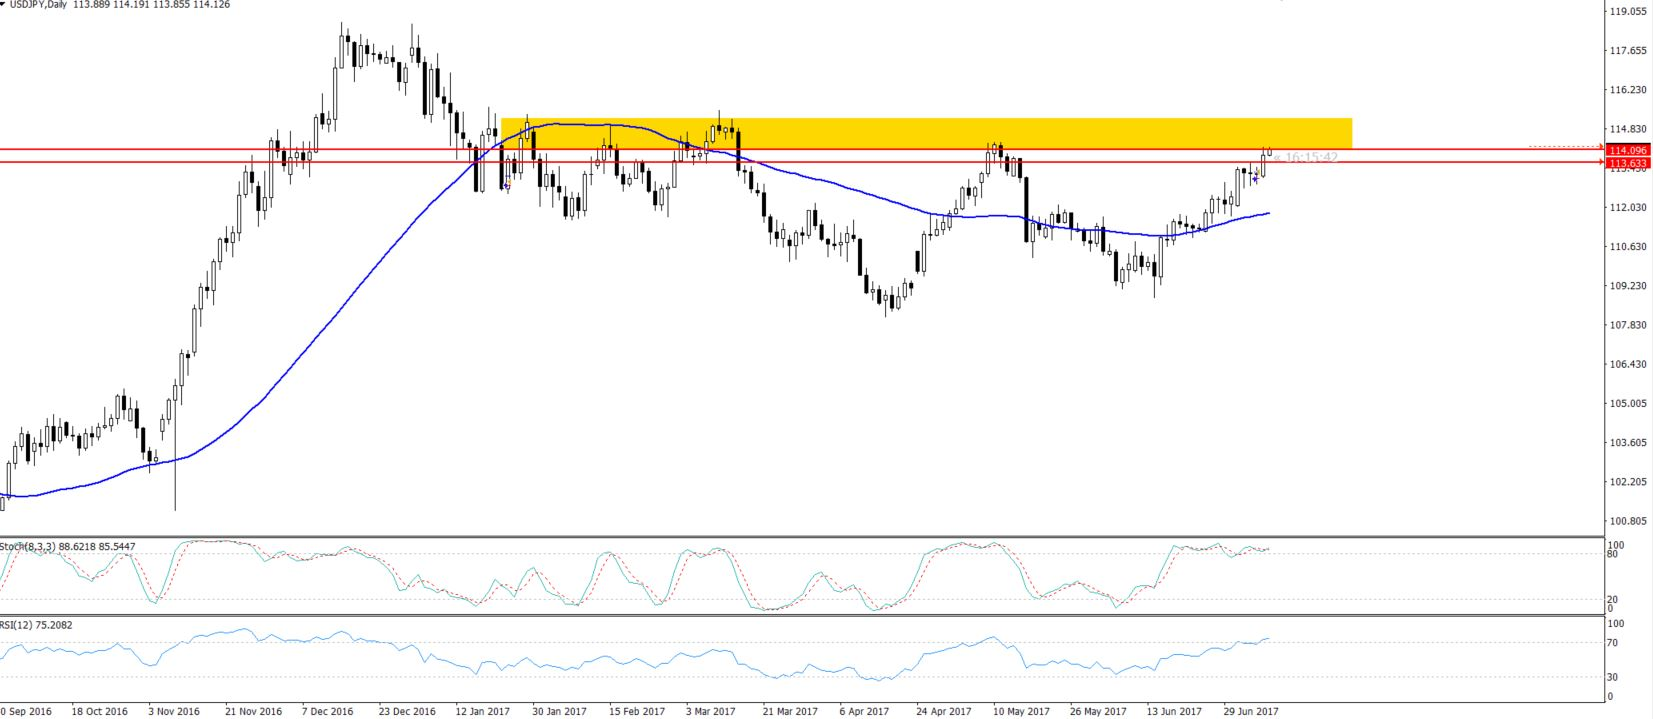 USDJPY - Double Top Pattern On Daily Chart